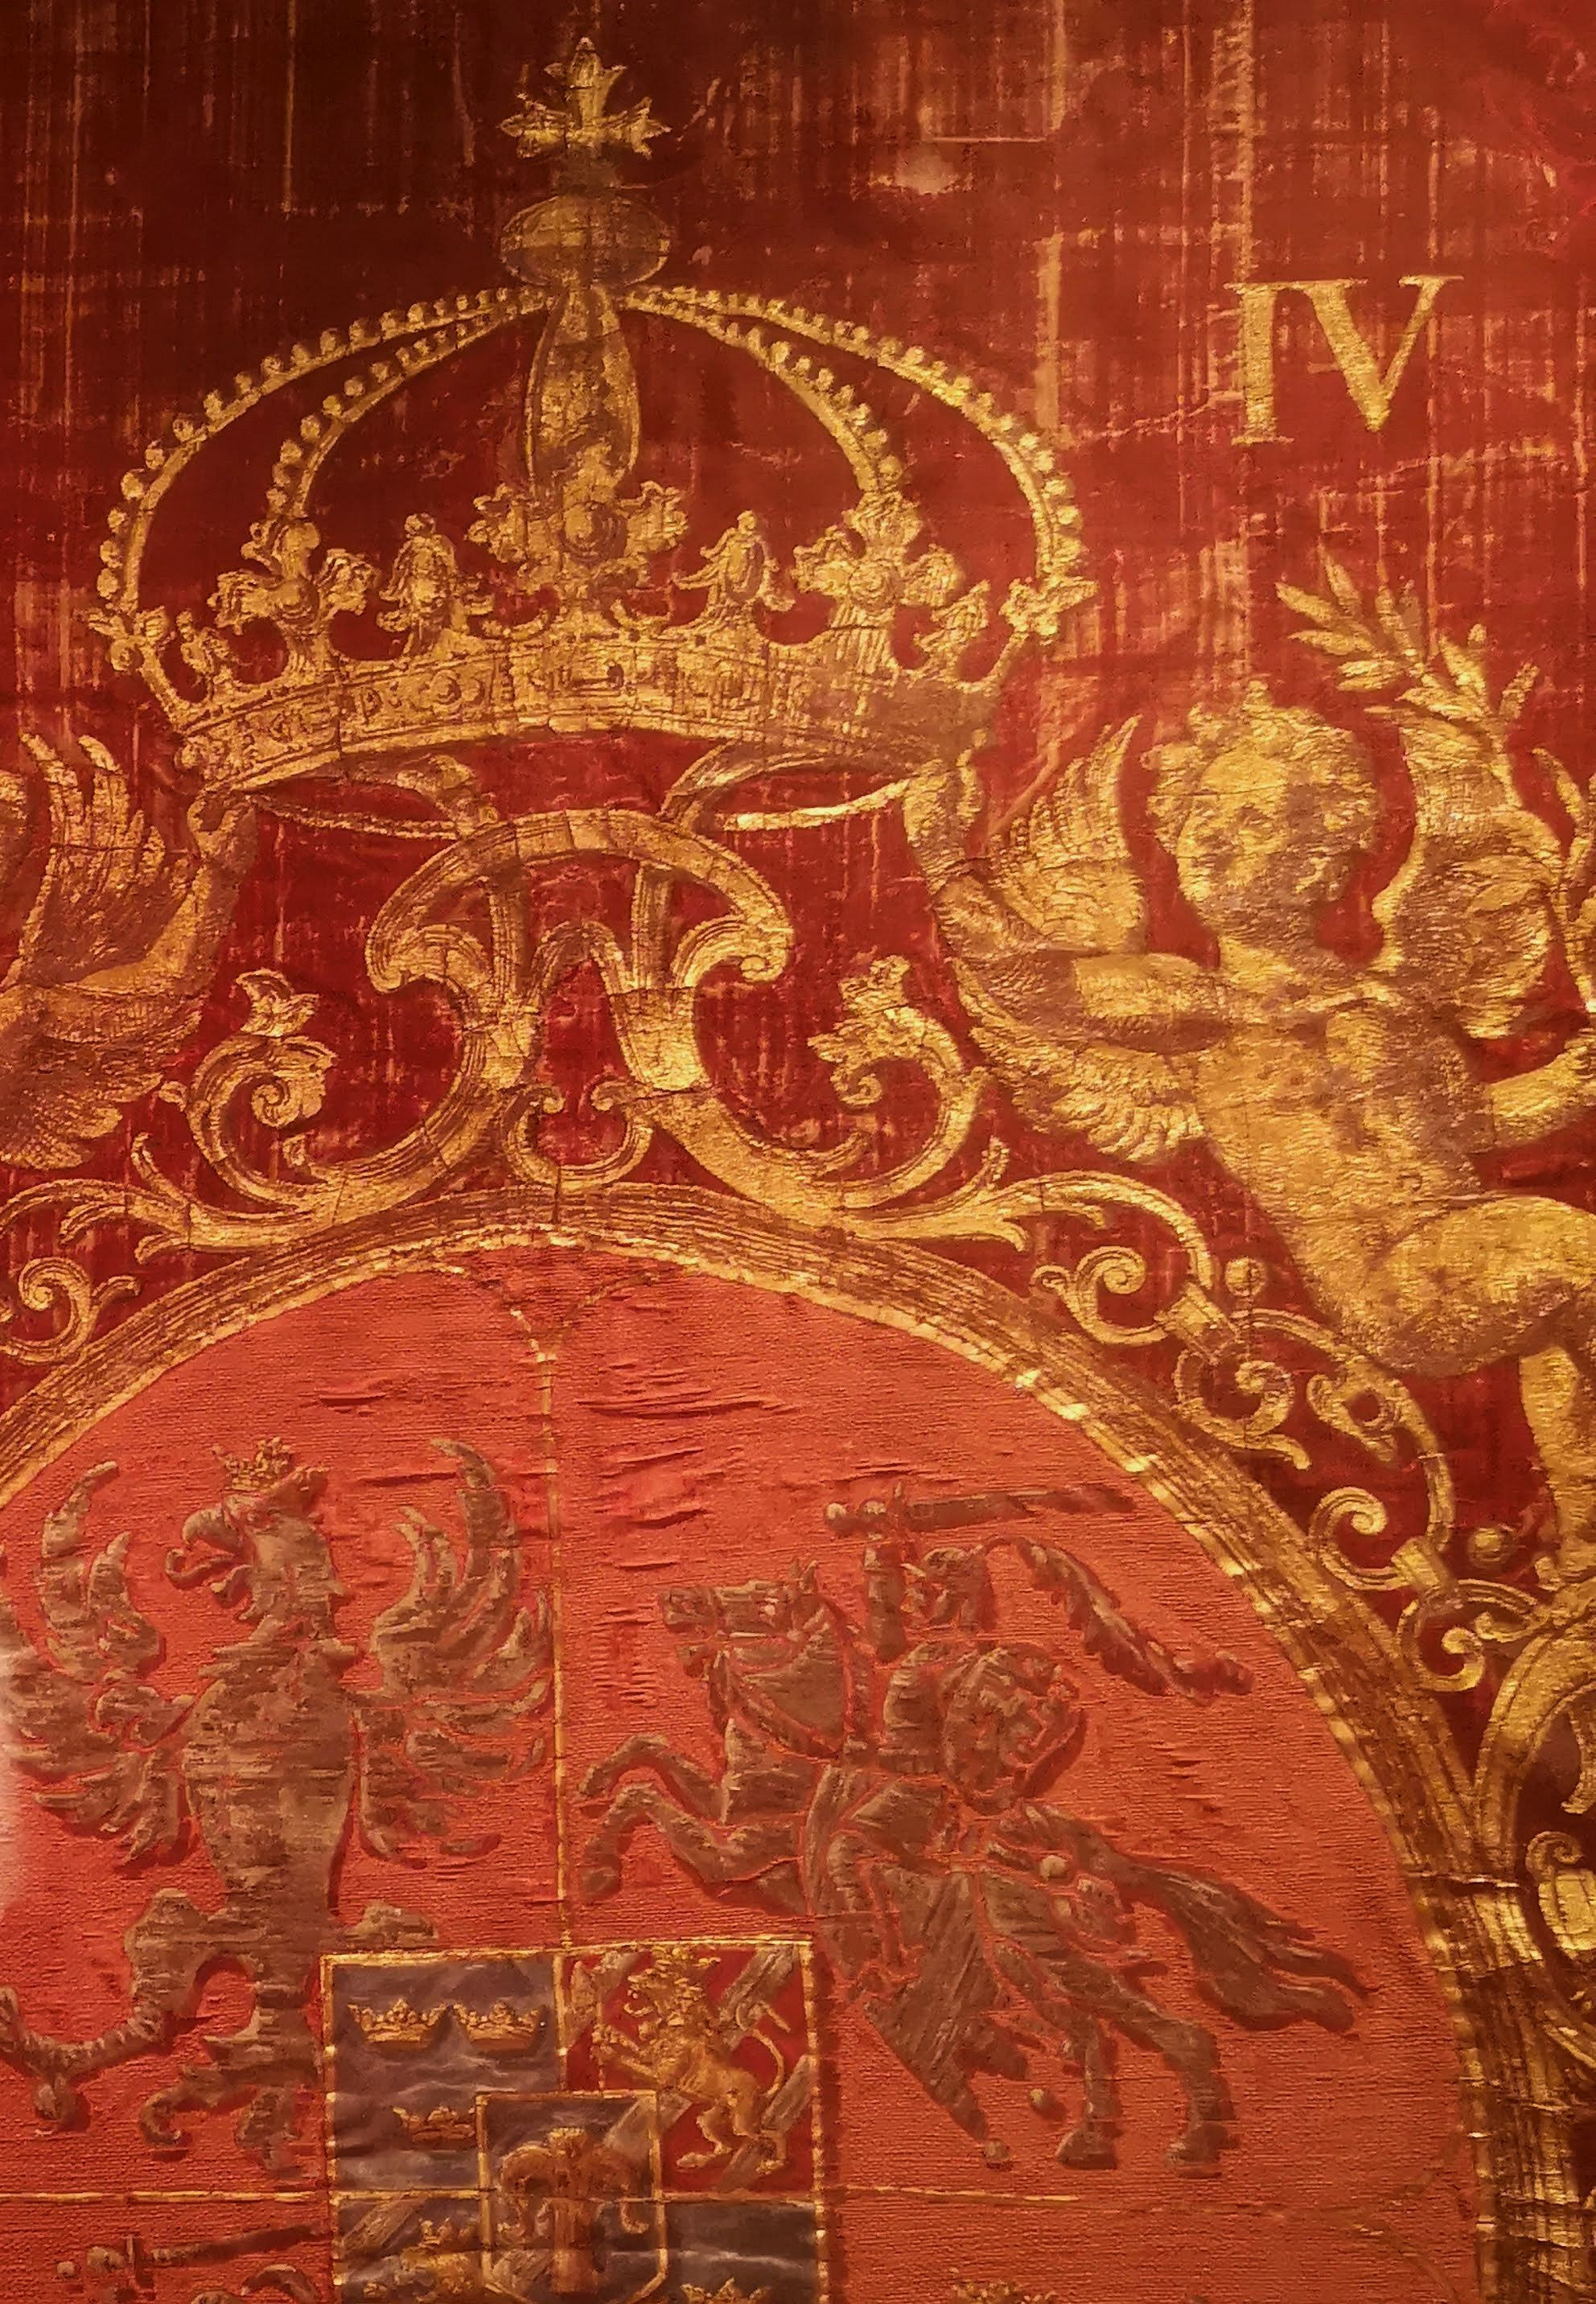 Detail of banner with emblem of Ladislaus IV Vasa by